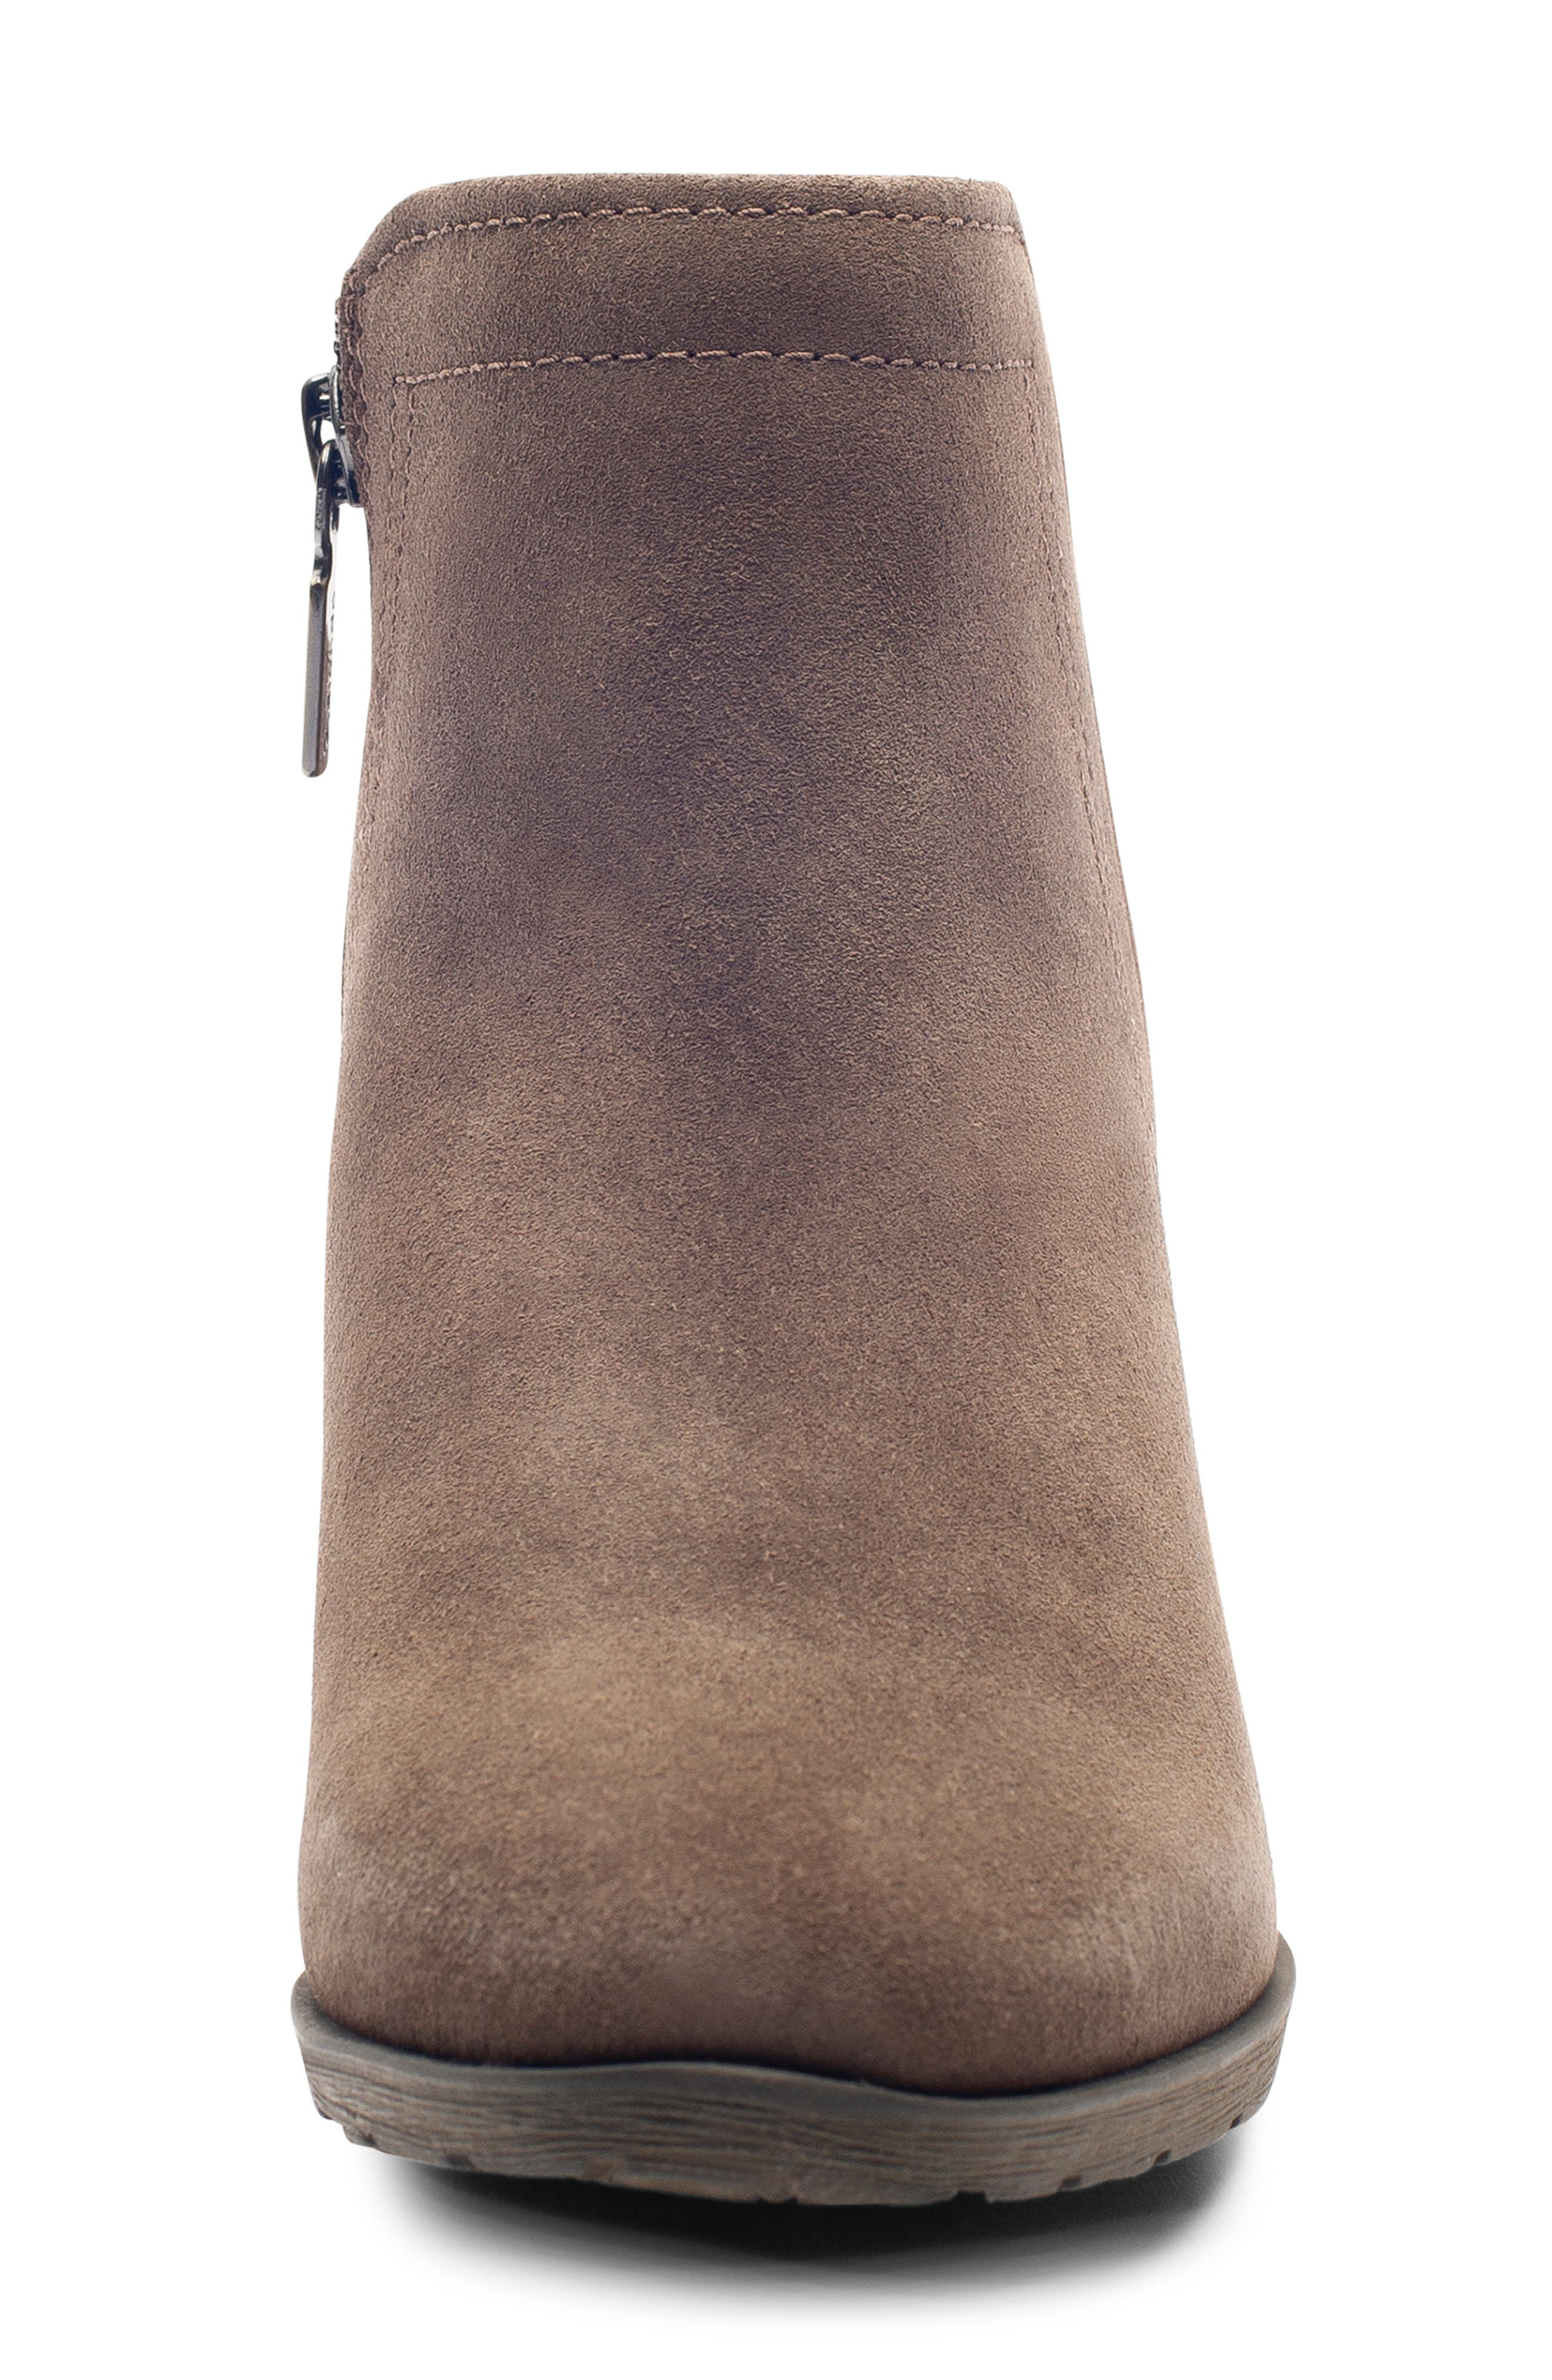 'Valli' Waterproof  Bootie,                             Alternate thumbnail 3, color,                             DARK TAUPE SUEDE